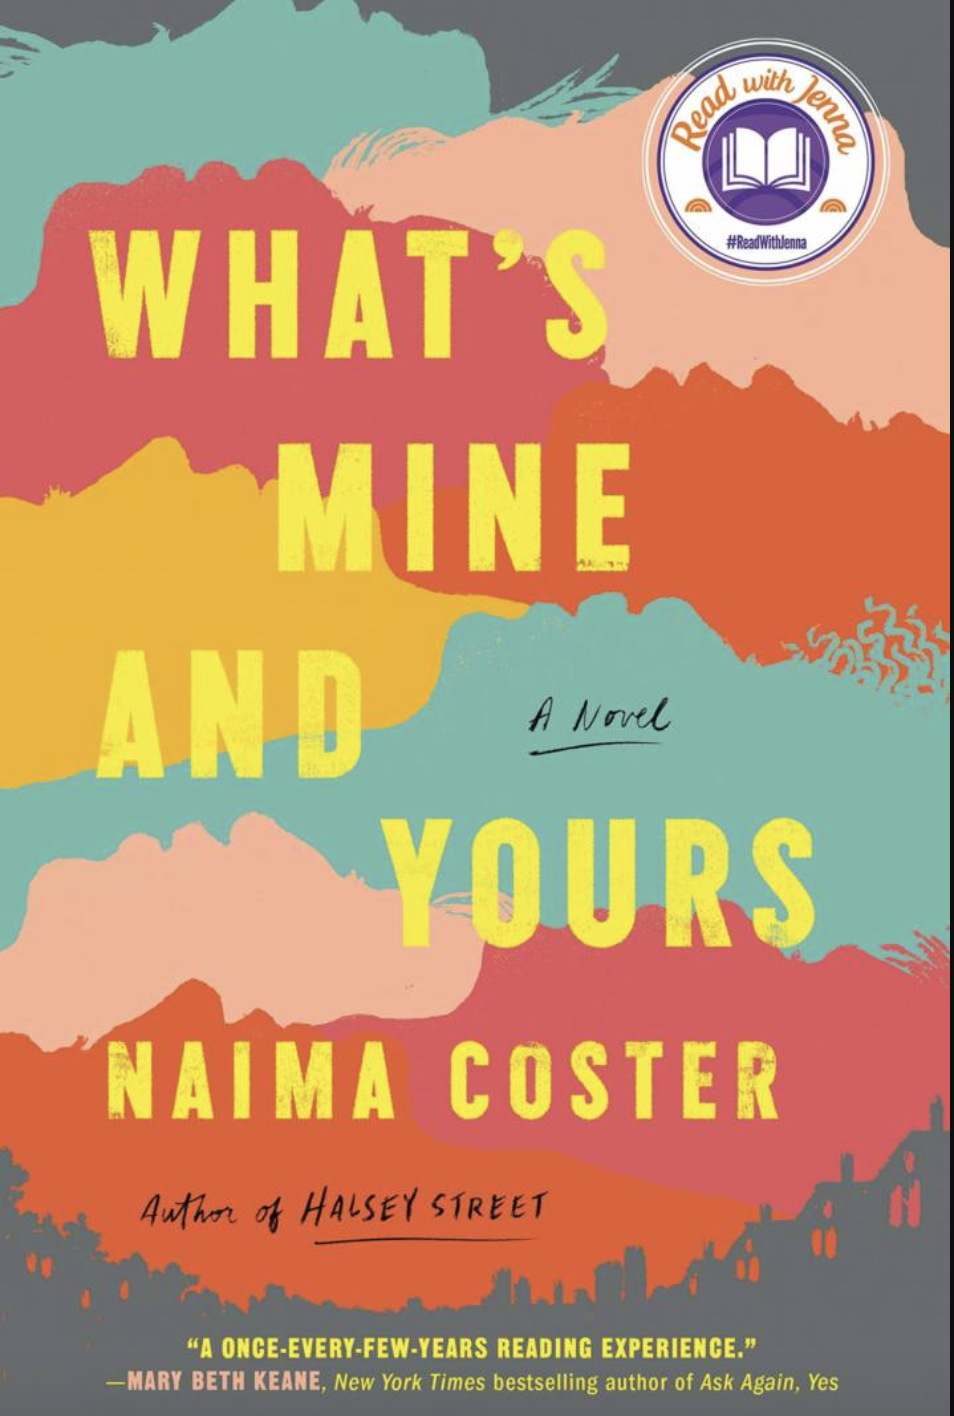 """<p><strong>Naima Coster</strong></p><p>bookshop.org</p><p><strong>$25.76</strong></p><p><a href=""""https://go.redirectingat.com?id=74968X1596630&url=https%3A%2F%2Fbookshop.org%2Fbooks%2Fwhat-s-mine-and-yours%2F9781538702345&sref=https%3A%2F%2Fwww.goodhousekeeping.com%2Flife%2Fentertainment%2Fg33831936%2Fbooks-by-latinx-authors%2F"""" rel=""""nofollow noopener"""" target=""""_blank"""" data-ylk=""""slk:Shop At Bookshop"""" class=""""link rapid-noclick-resp"""">Shop At Bookshop</a></p><p><a class=""""link rapid-noclick-resp"""" href=""""https://amzn.to/2Wqa7Ft"""" rel=""""nofollow noopener"""" target=""""_blank"""" data-ylk=""""slk:SHOP AT AMAZON"""">SHOP AT AMAZON </a></p><p>Two North Caroline students, Gee and Noelle, face racial tension from the community and their own families after a governmental plan brings students from primarily Black neighborhoods into a nearby white high school. When they join the school play meant to bridge the divide, it sets off a chain of events that will entangle their families for years to come. </p>"""